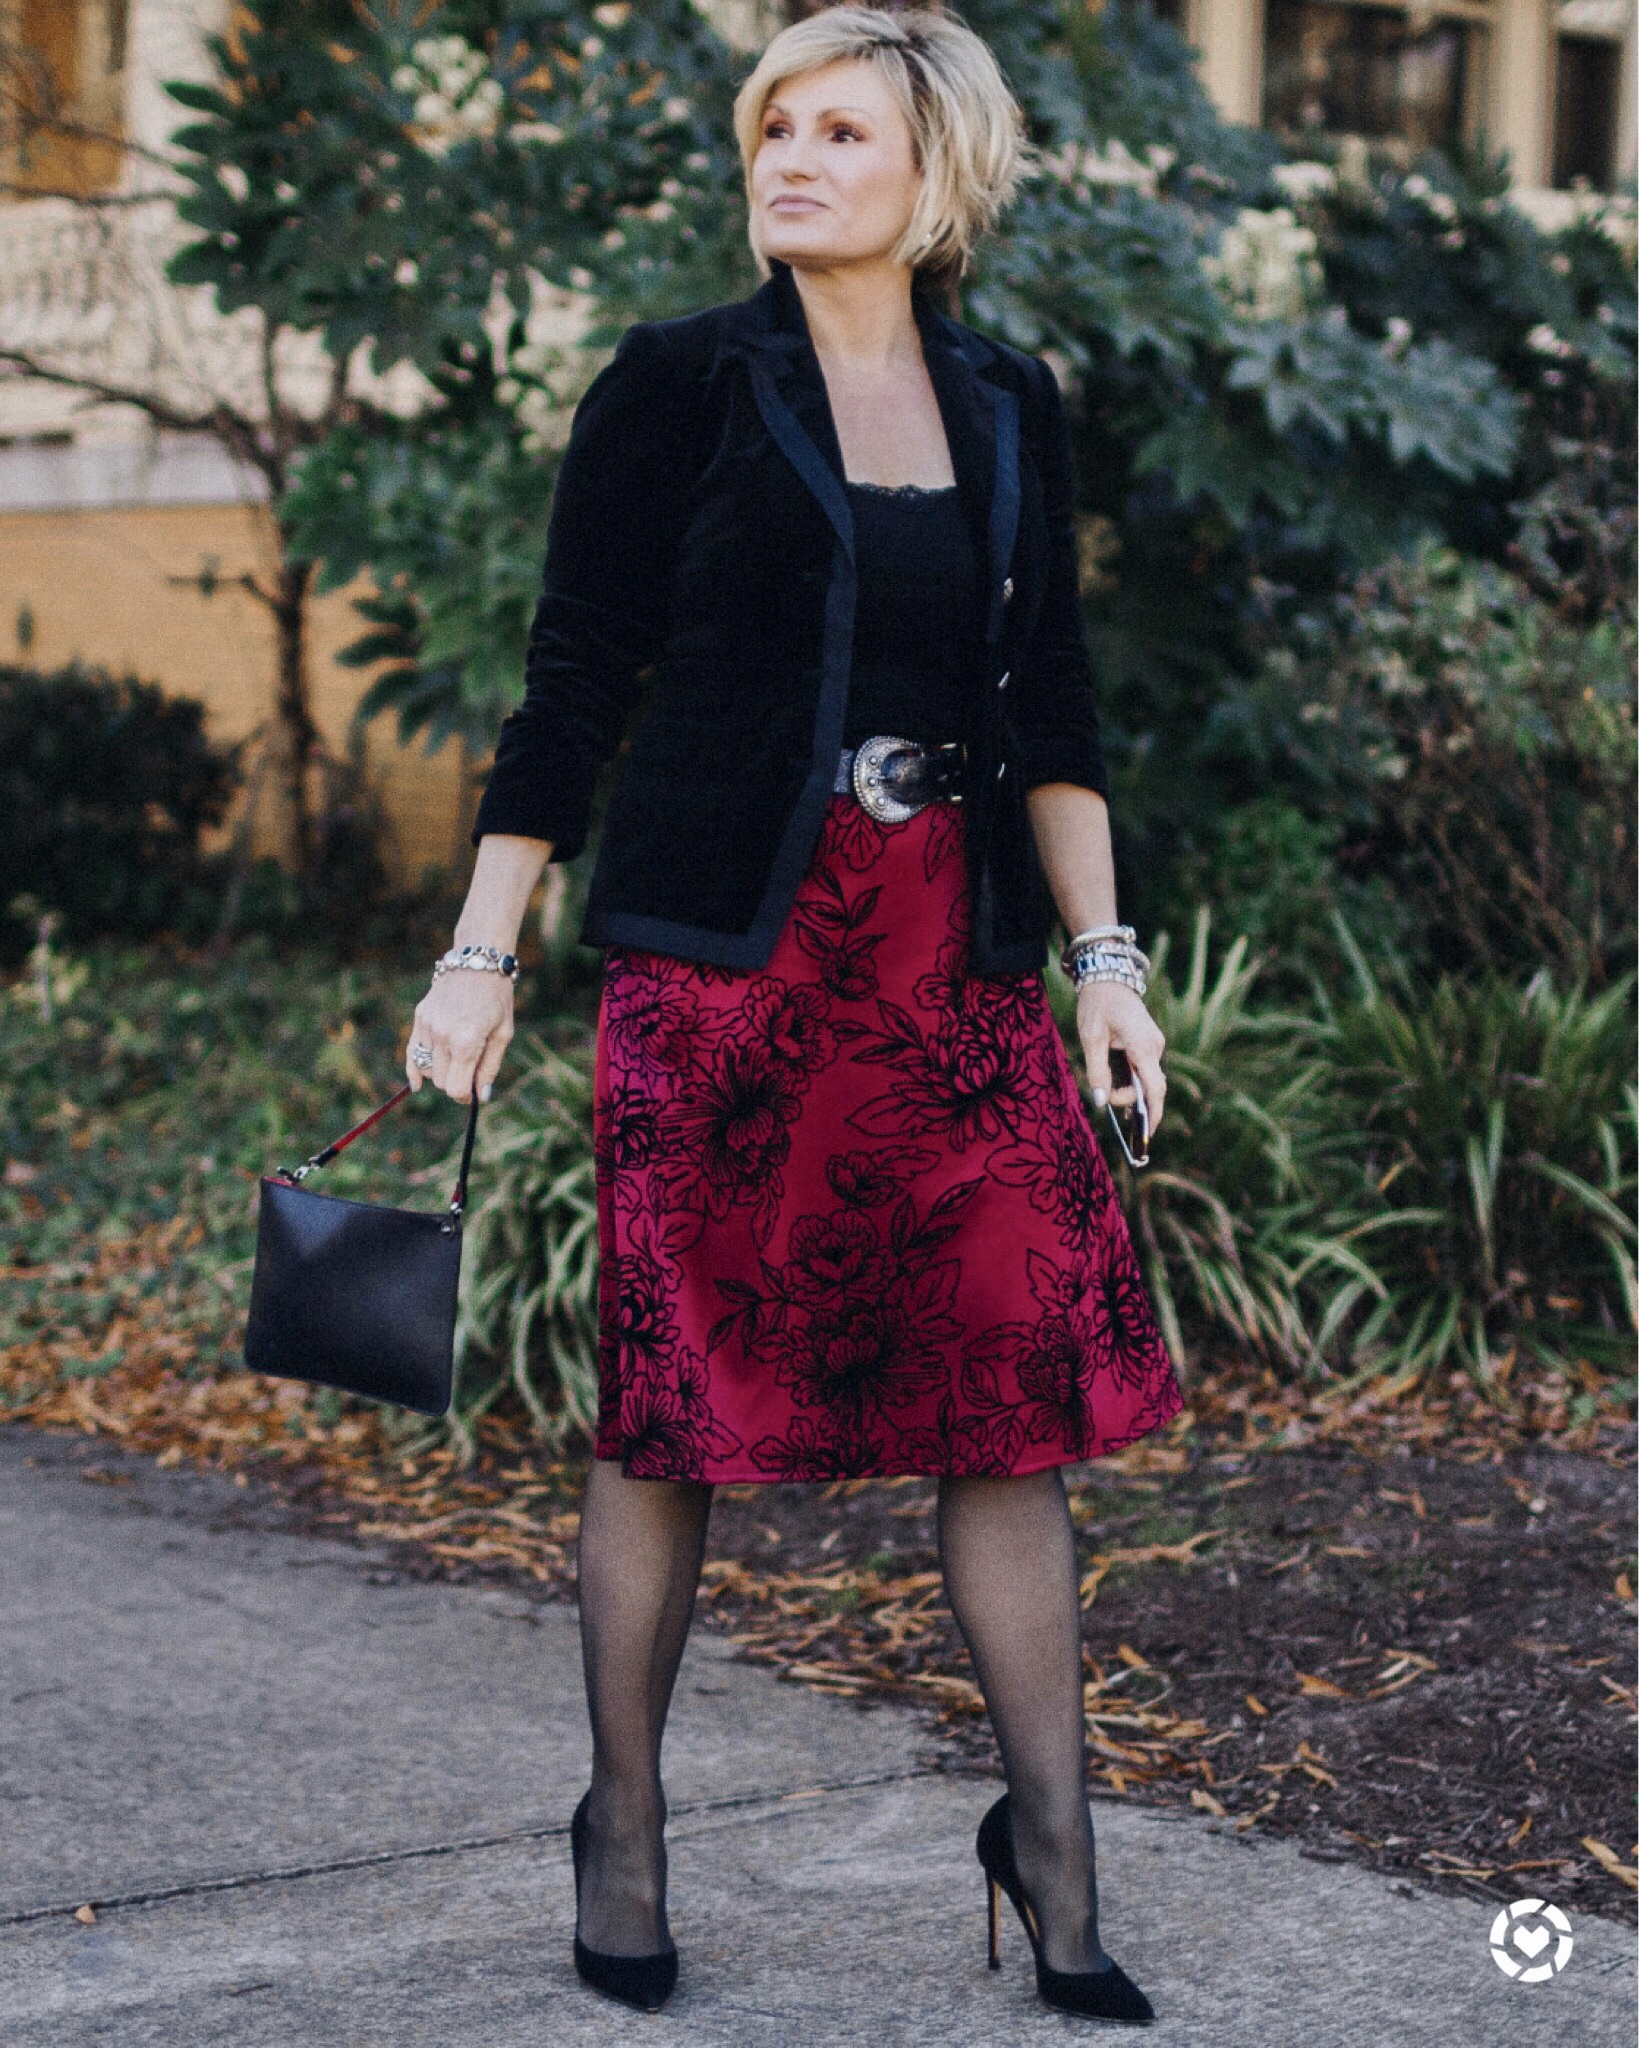 From in-office lunch to out-of-office party, @dressbarn will be making you #SparkleGlimmerGlow this holiday season. This floral scuba skirt has you covered with its forgiving waist and a-line silhouette. This skirt will be on repeat well into the New Year. Oh, and did I mention it was under $35? At this price you can grab two and gift one. Also comes in plus sizes. #ad #dressbarn     Skirt:  https://www.dressbarn.com/flocked-floral-scuba-circle-skirt-/prd-103620706?ref_page=search#color/954